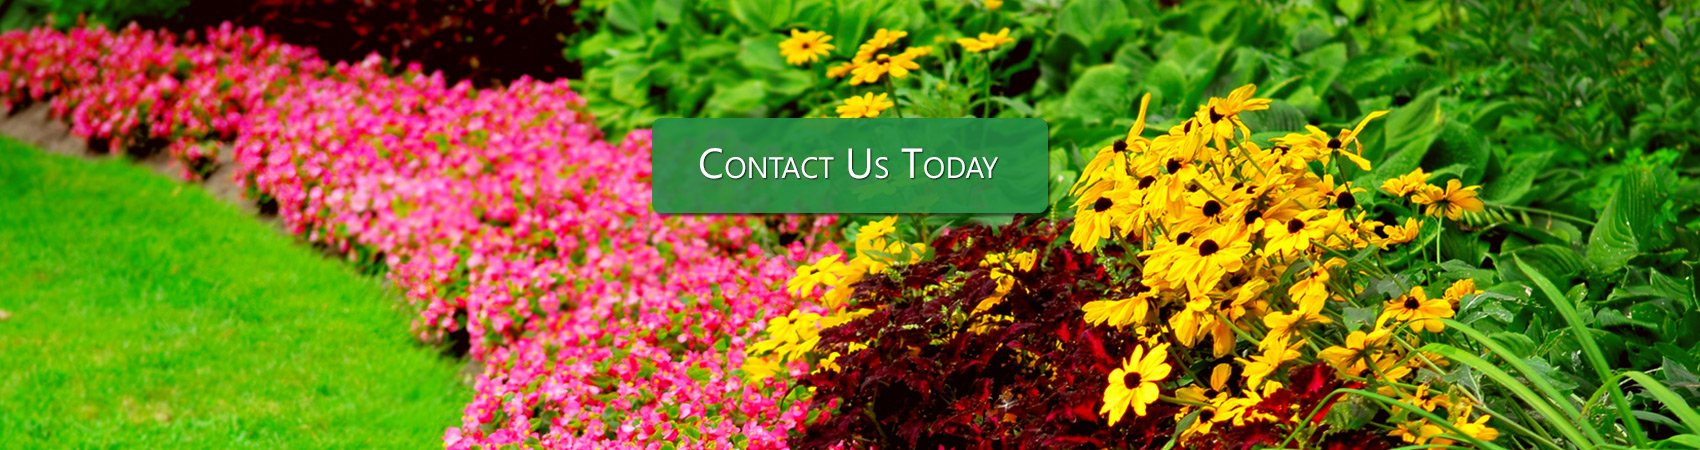 landscaping services greenfield indiana